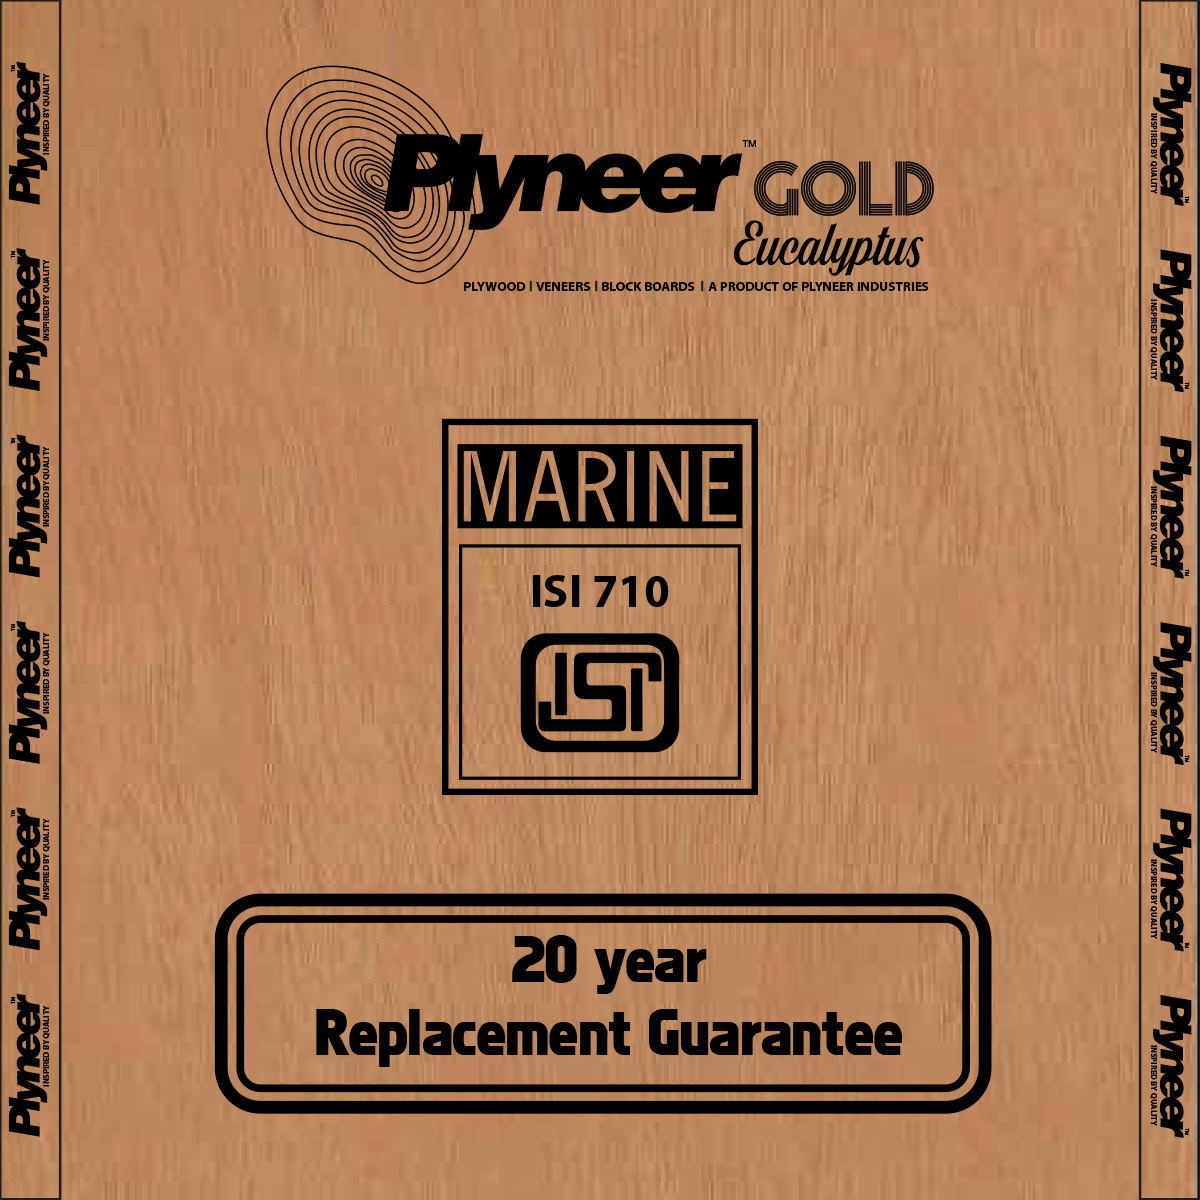 Plyneer Gold B.W.P Pinewood Waterproof Block Board - 15 Years Replacement Guarantee*